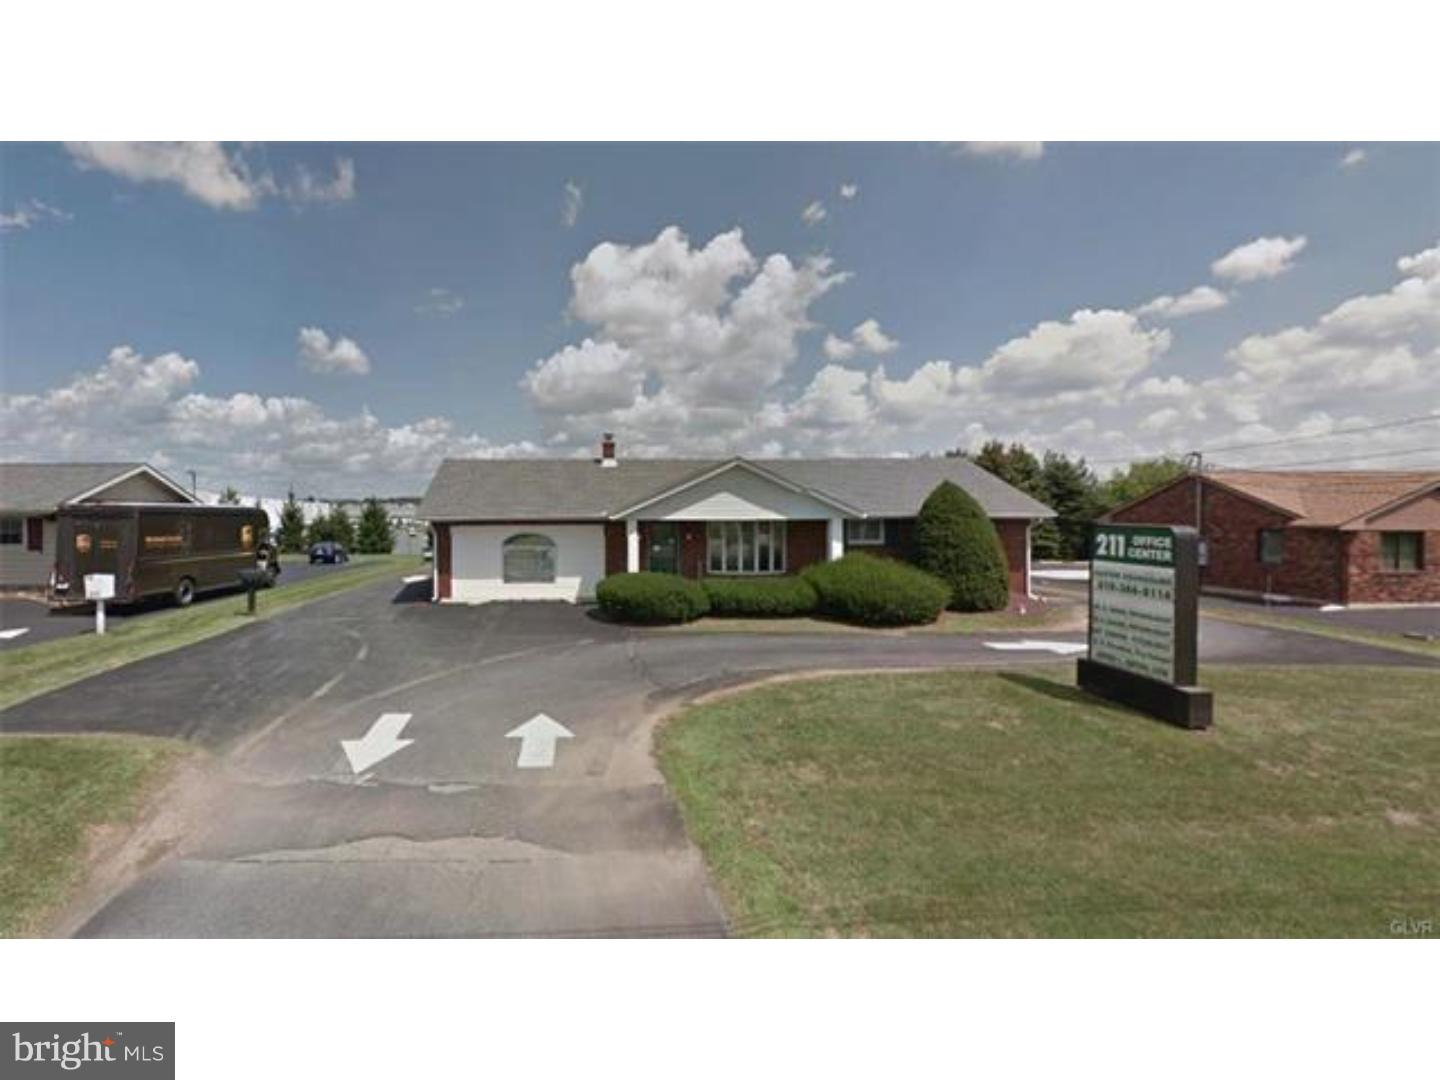 211 S ROUTE 100 S, MACUNGIE, PA 18106